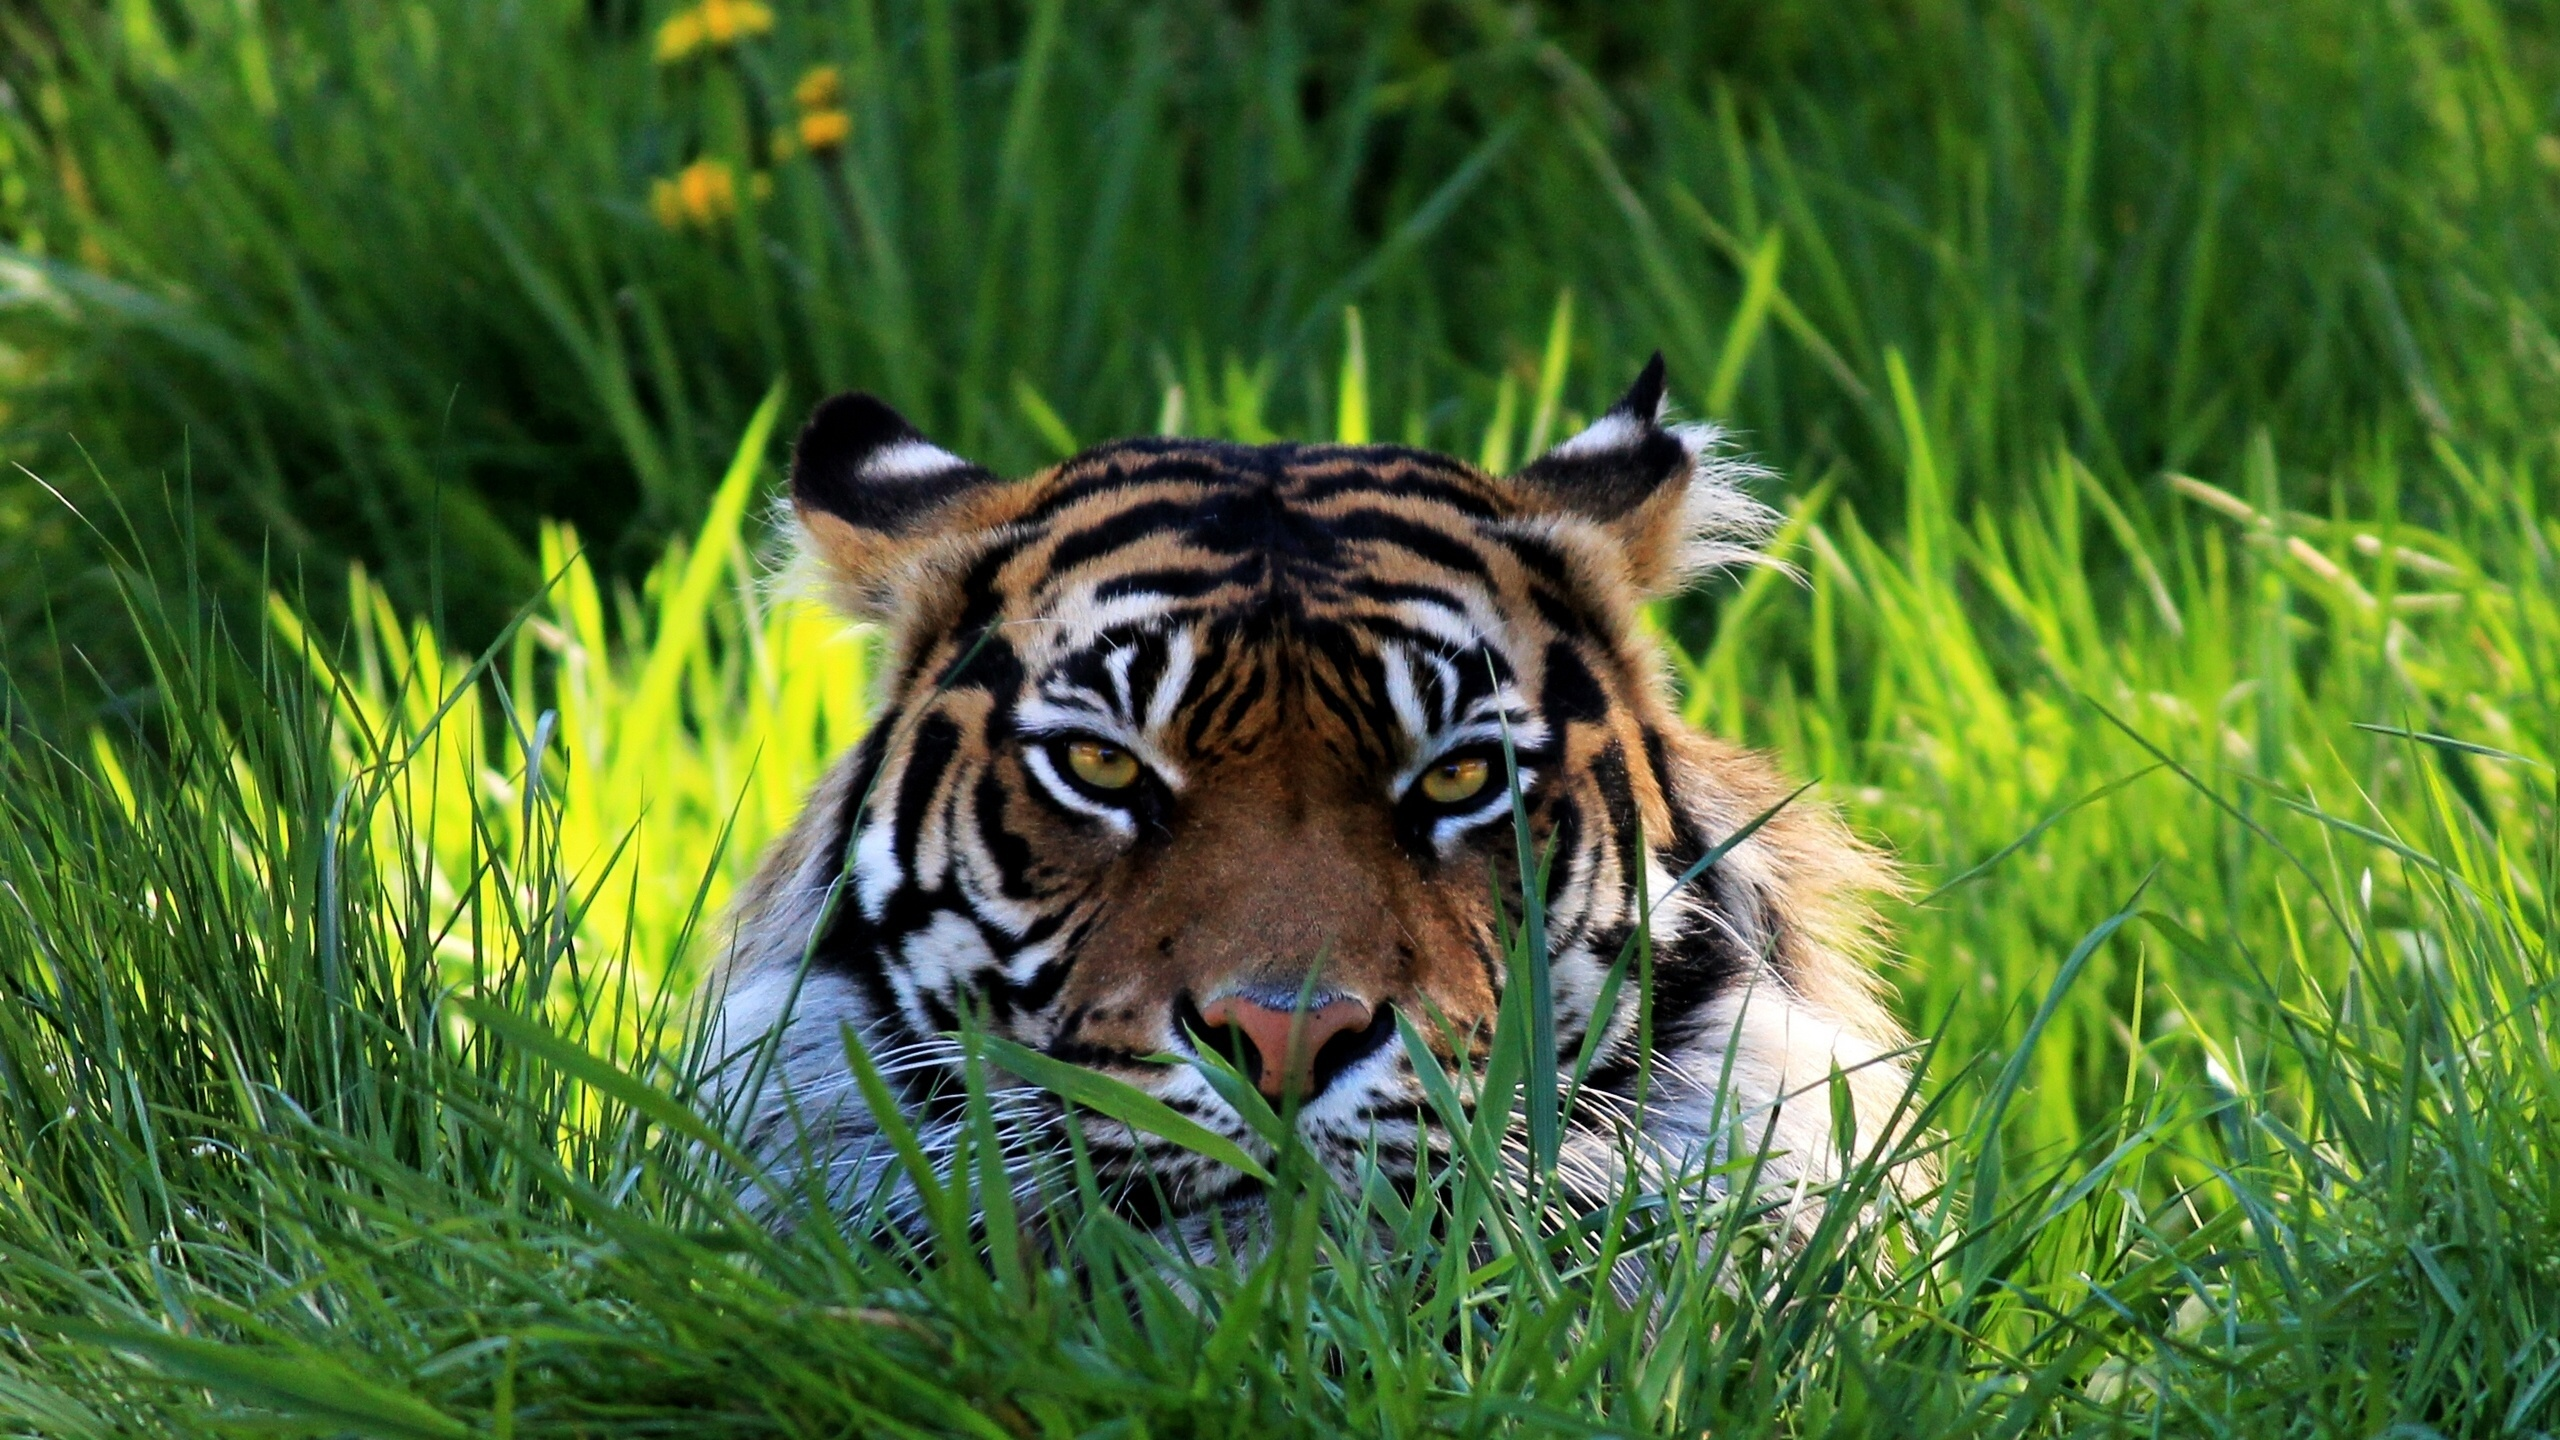 Tiger Wallpapers  Full HD wallpaper search